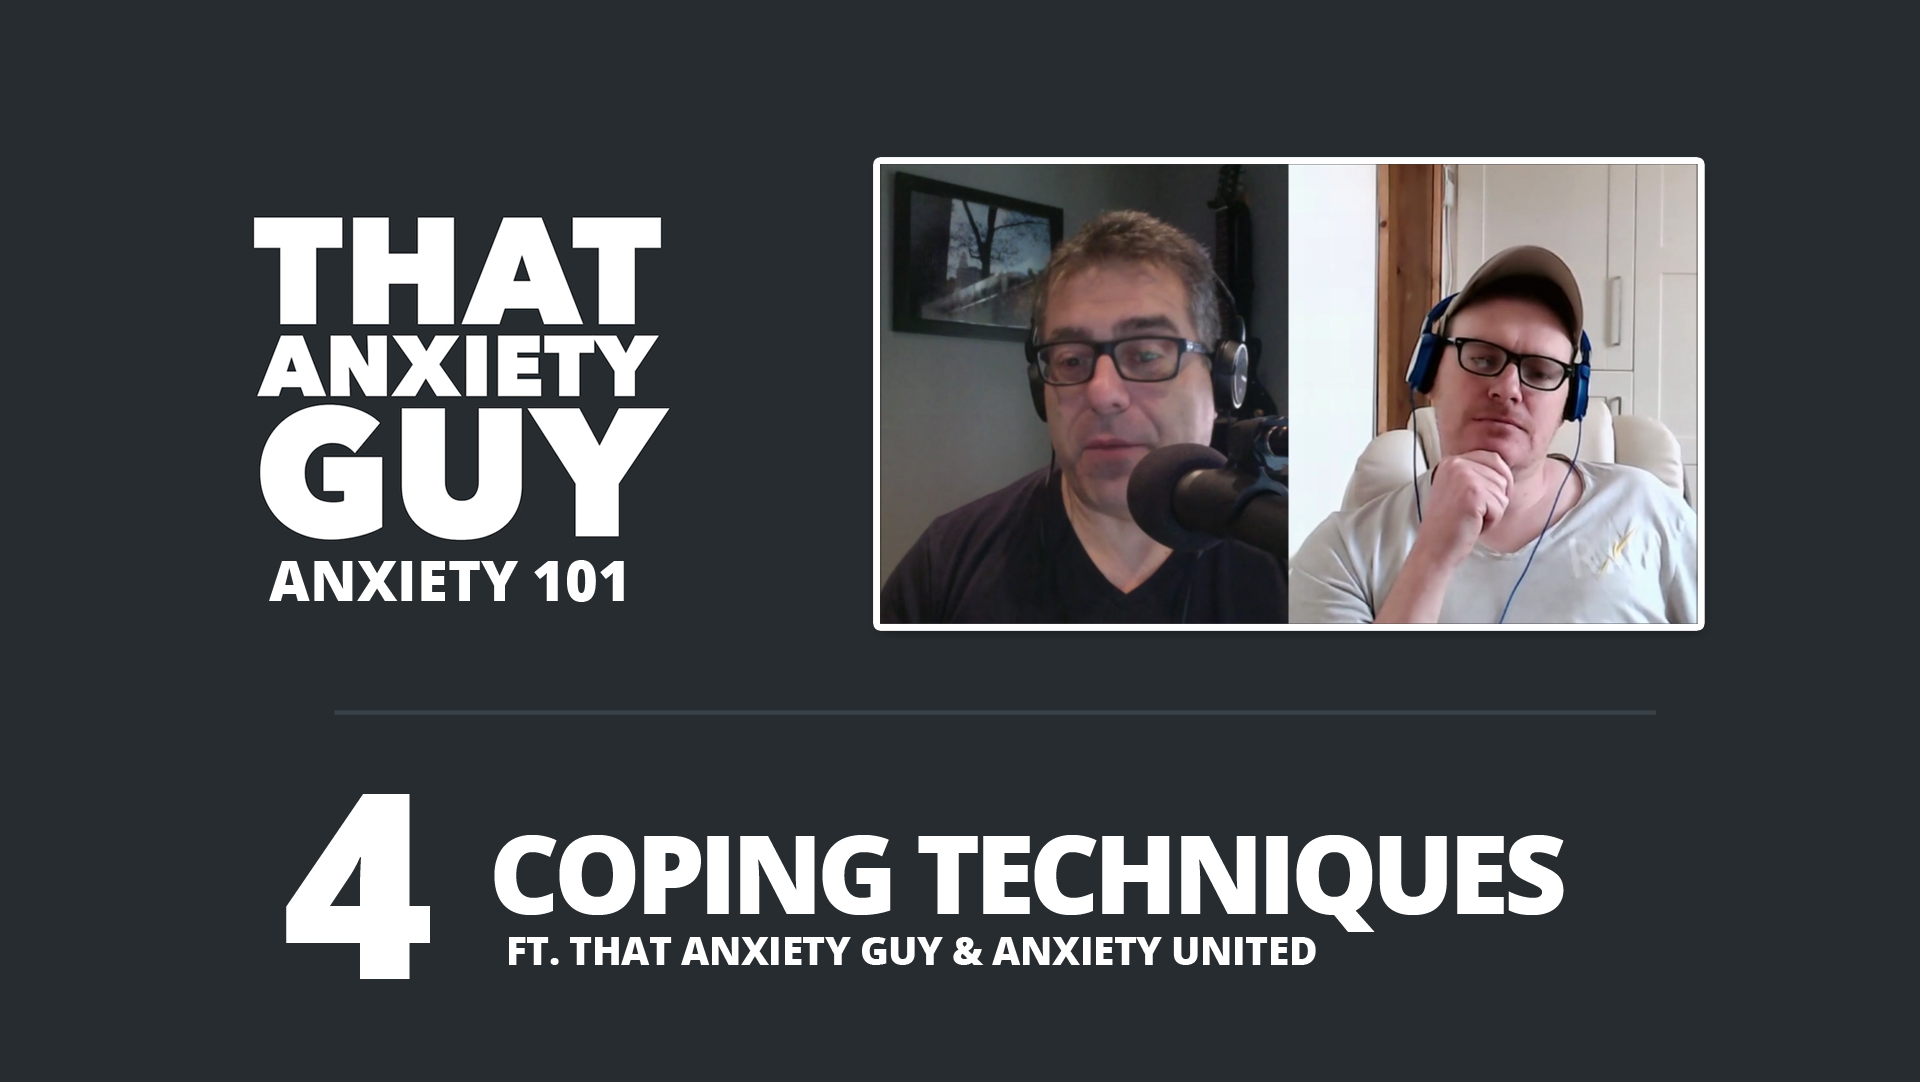 Anxiety 101 Episode 4